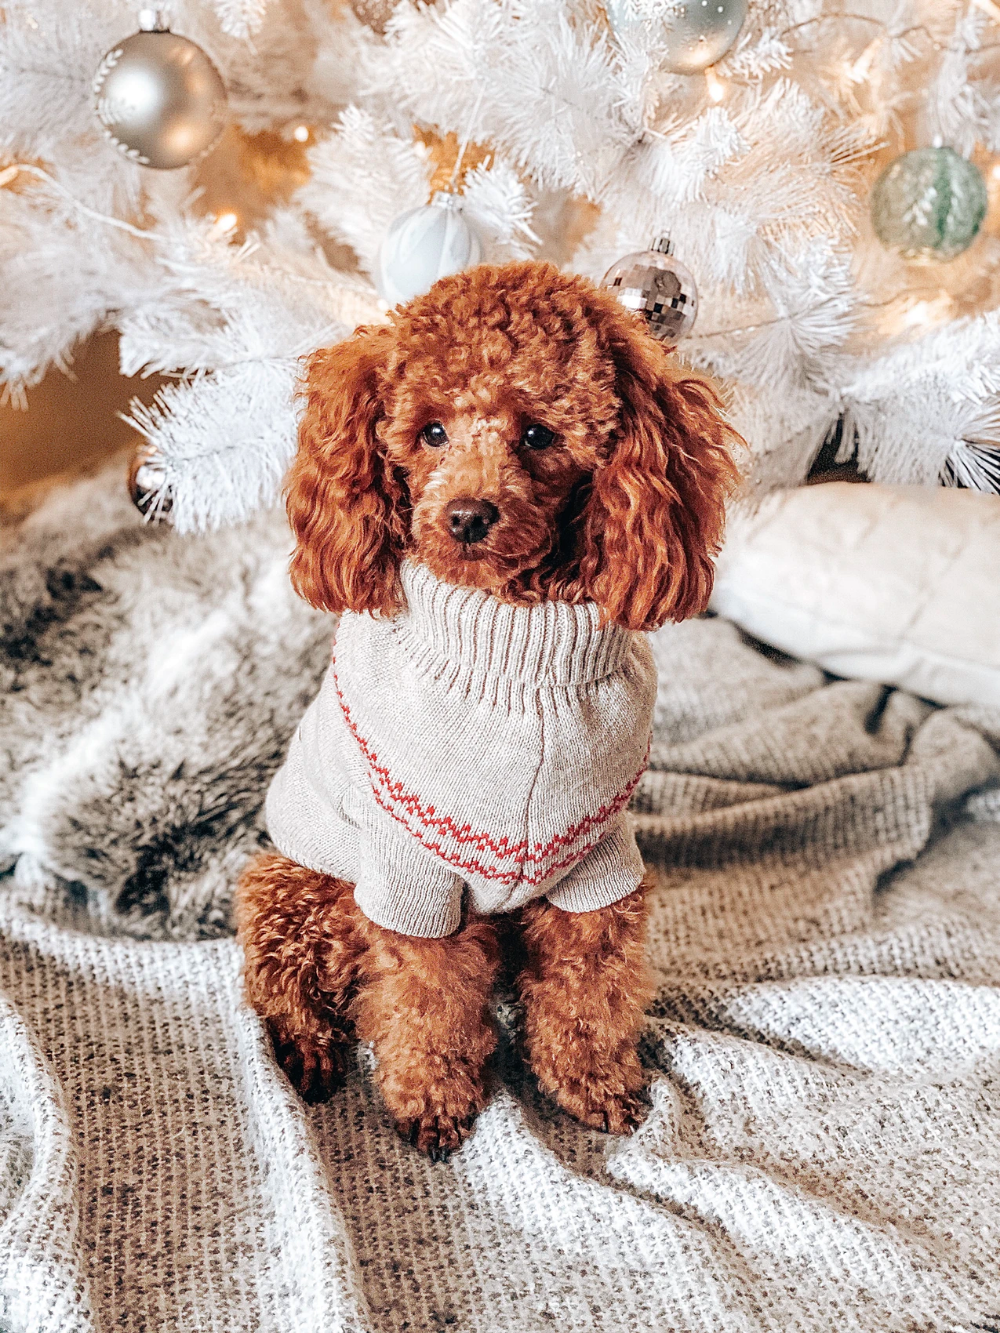 Brown Toy Poodle With White And Red Costume Photo Free Dog Image On Unsplash Brown Toy Poodle Poodle Puppy Toy Poodle Puppy